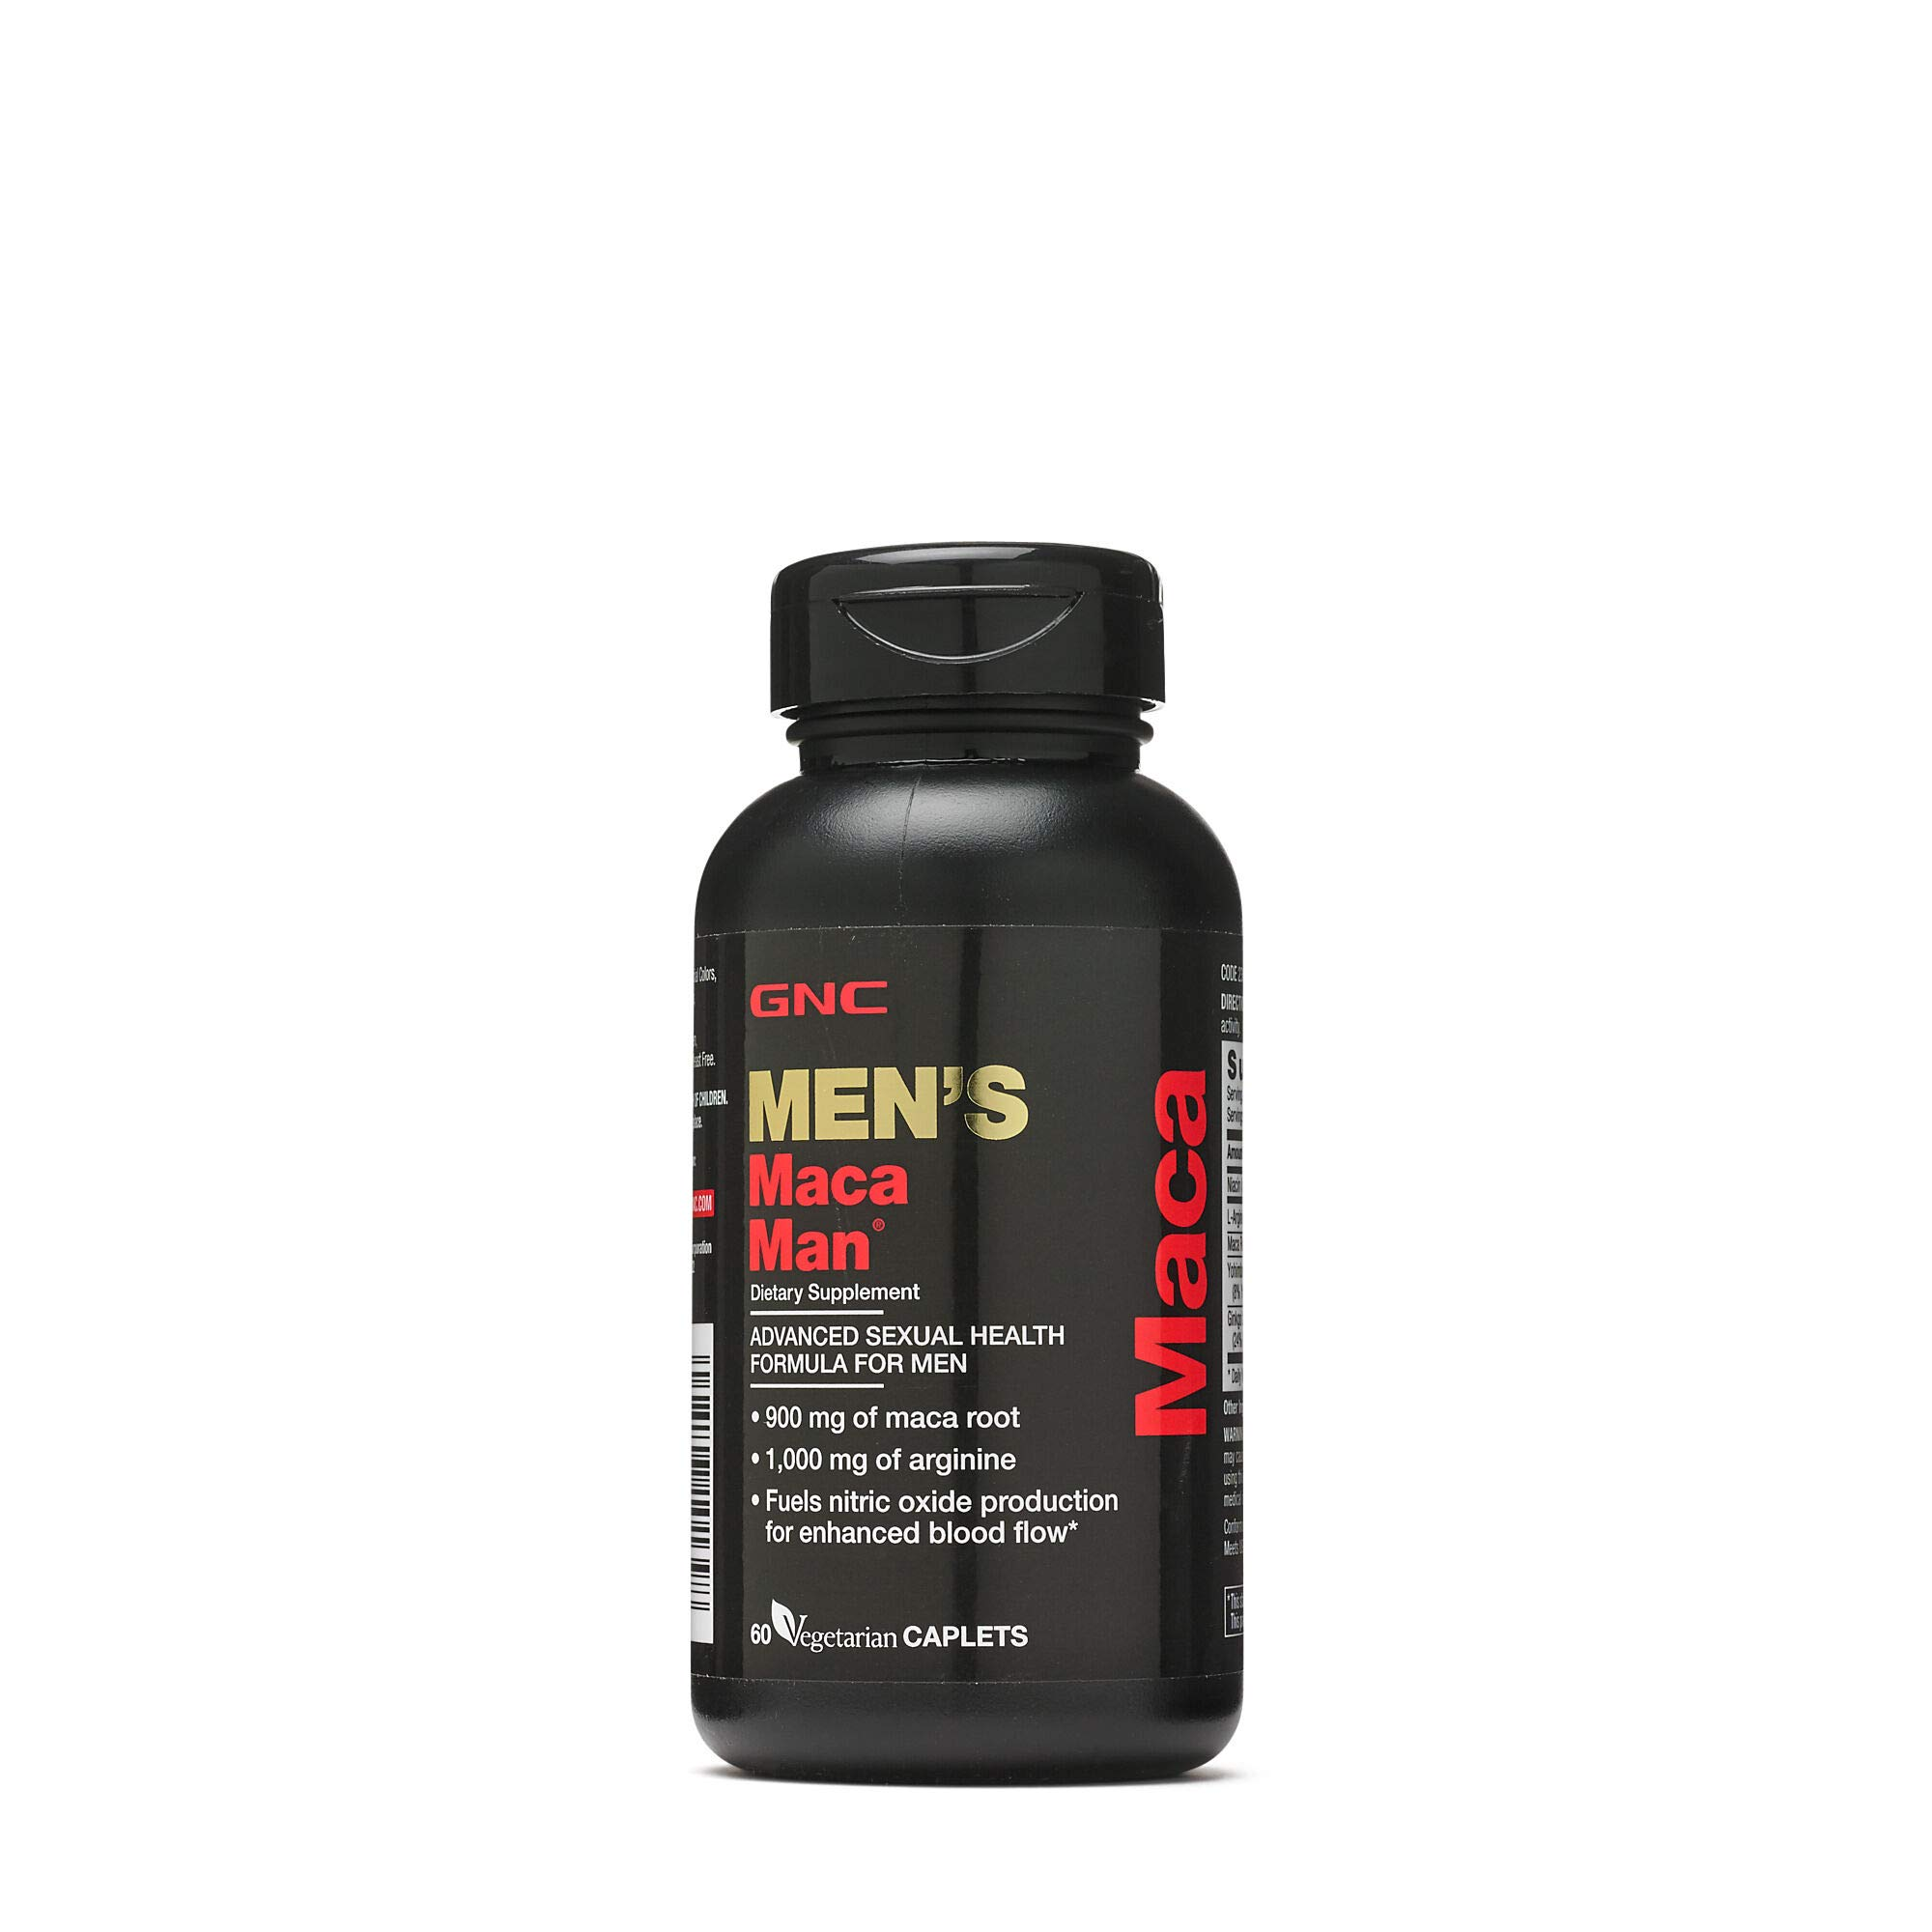 GNC Maca Man, Maca Root Arginine for Enhanced Blood Flow - 60 Vegetarian Capsules by GNC